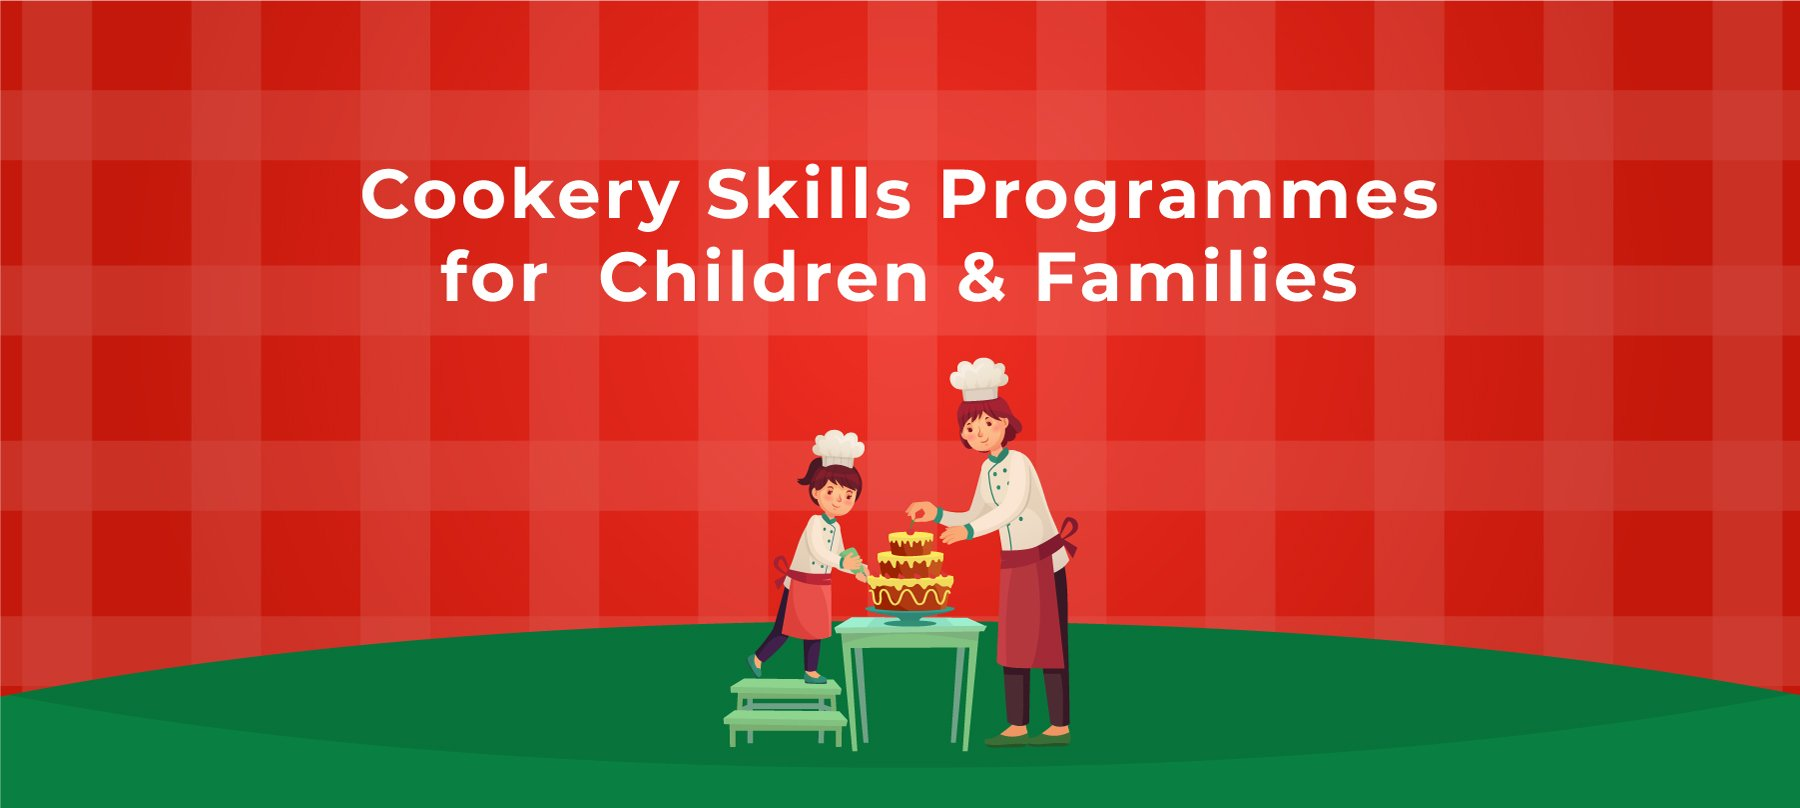 Cookery Skills Programmes for Children and Families